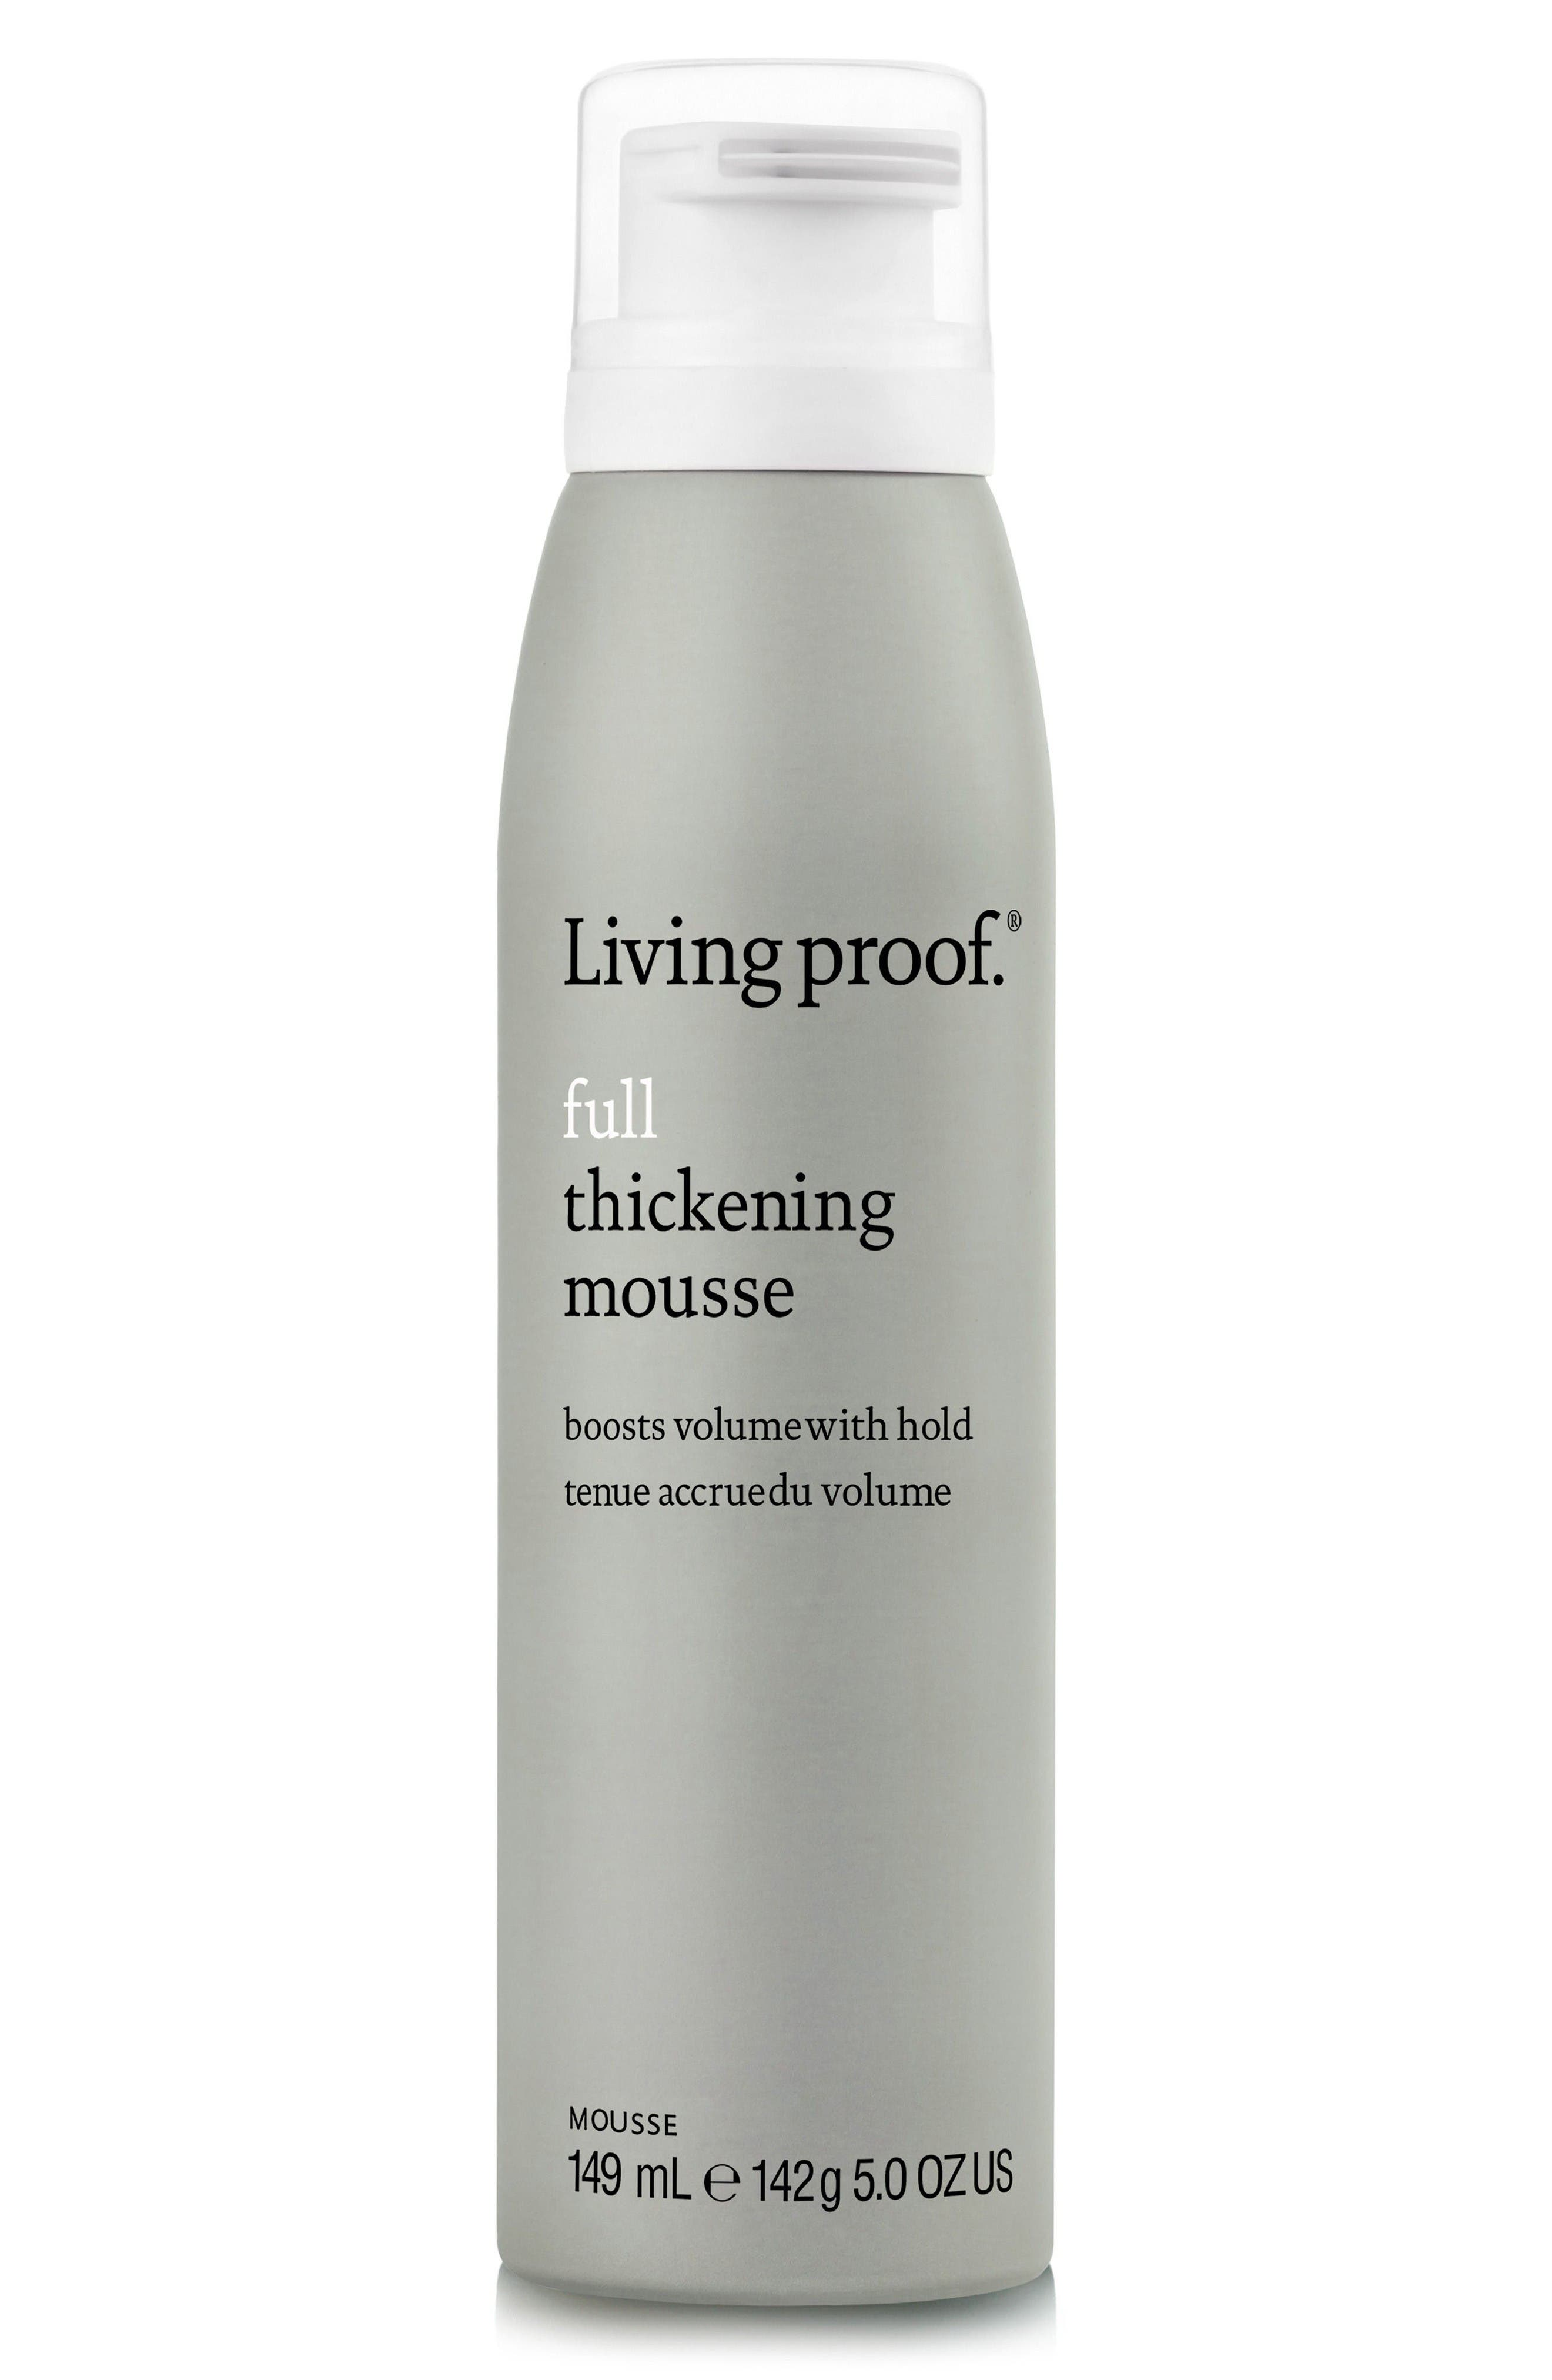 Main Image - Living proof® Full Thickening Mousse